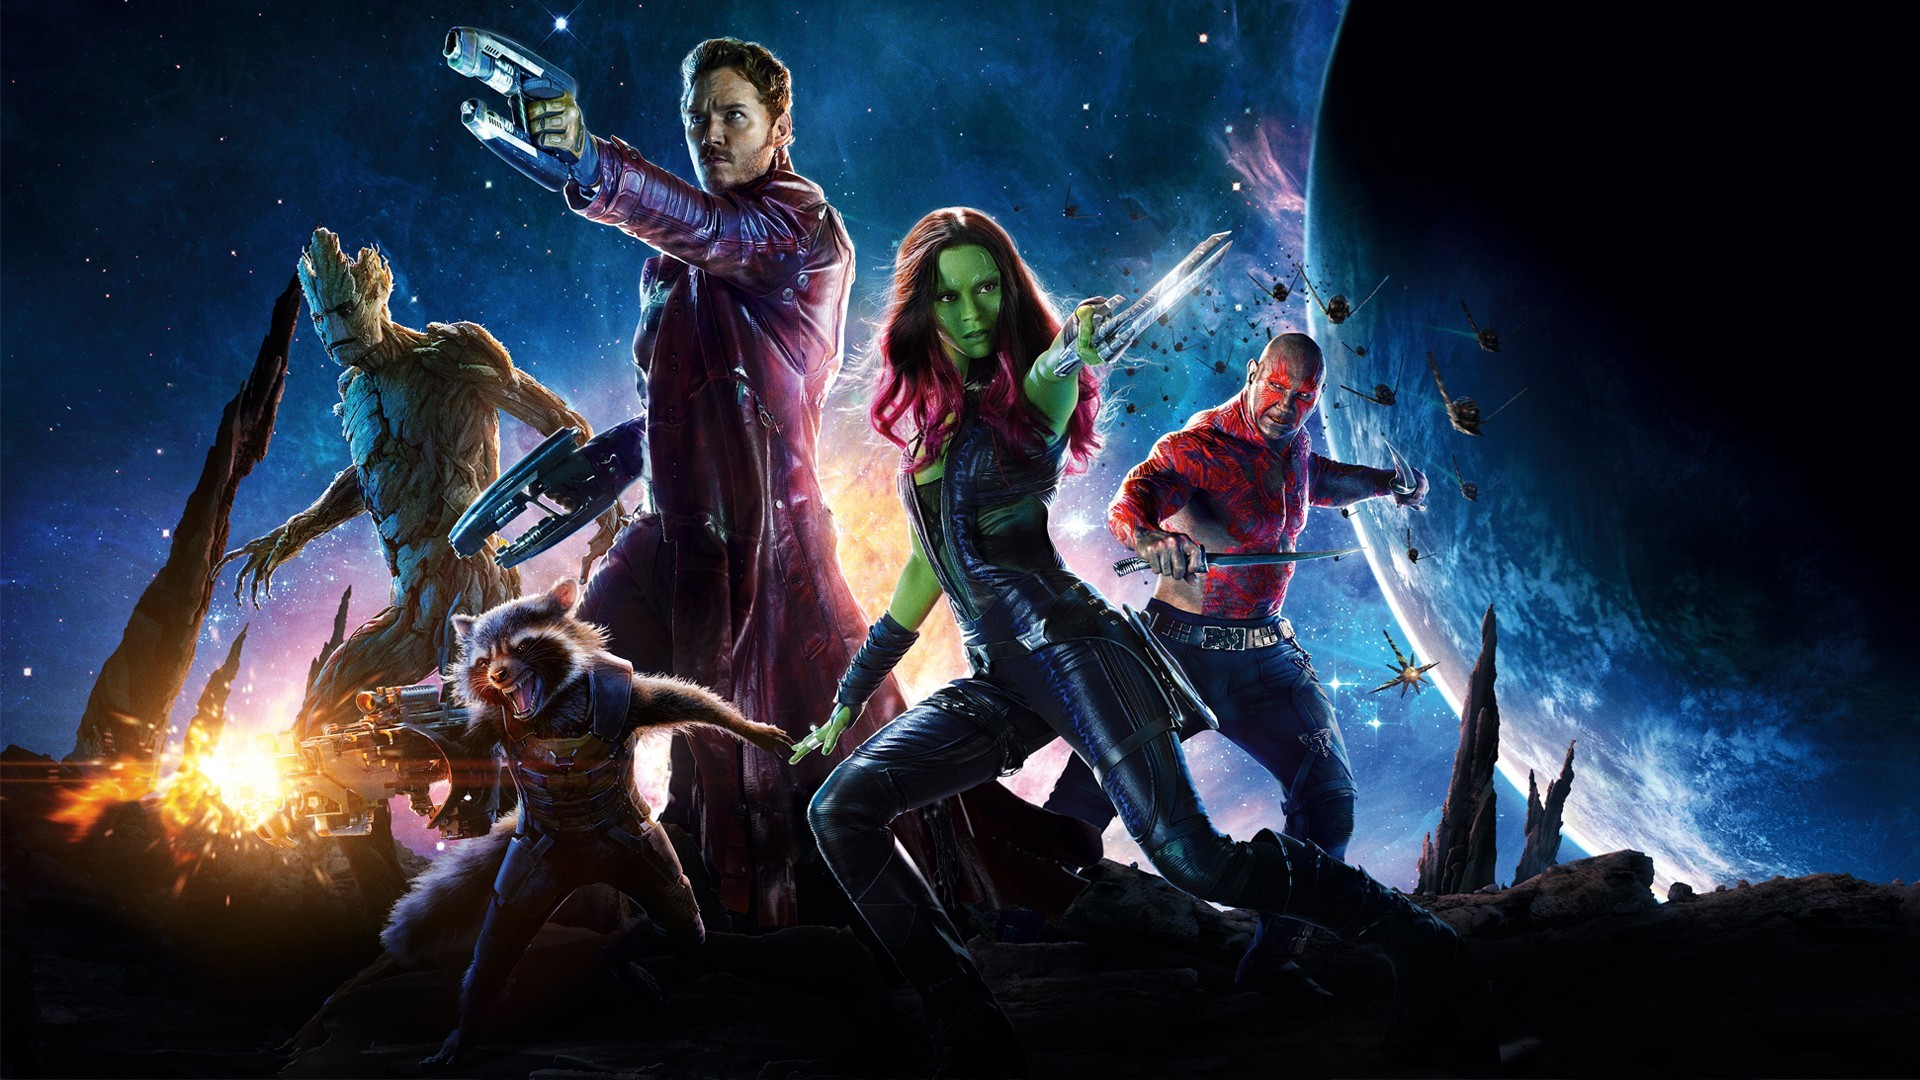 Res: 1920x1080, Movie - Guardians of the Galaxy Rocket Raccoon Groot Dave Bautista Drax The  Destroyer Peter Quill